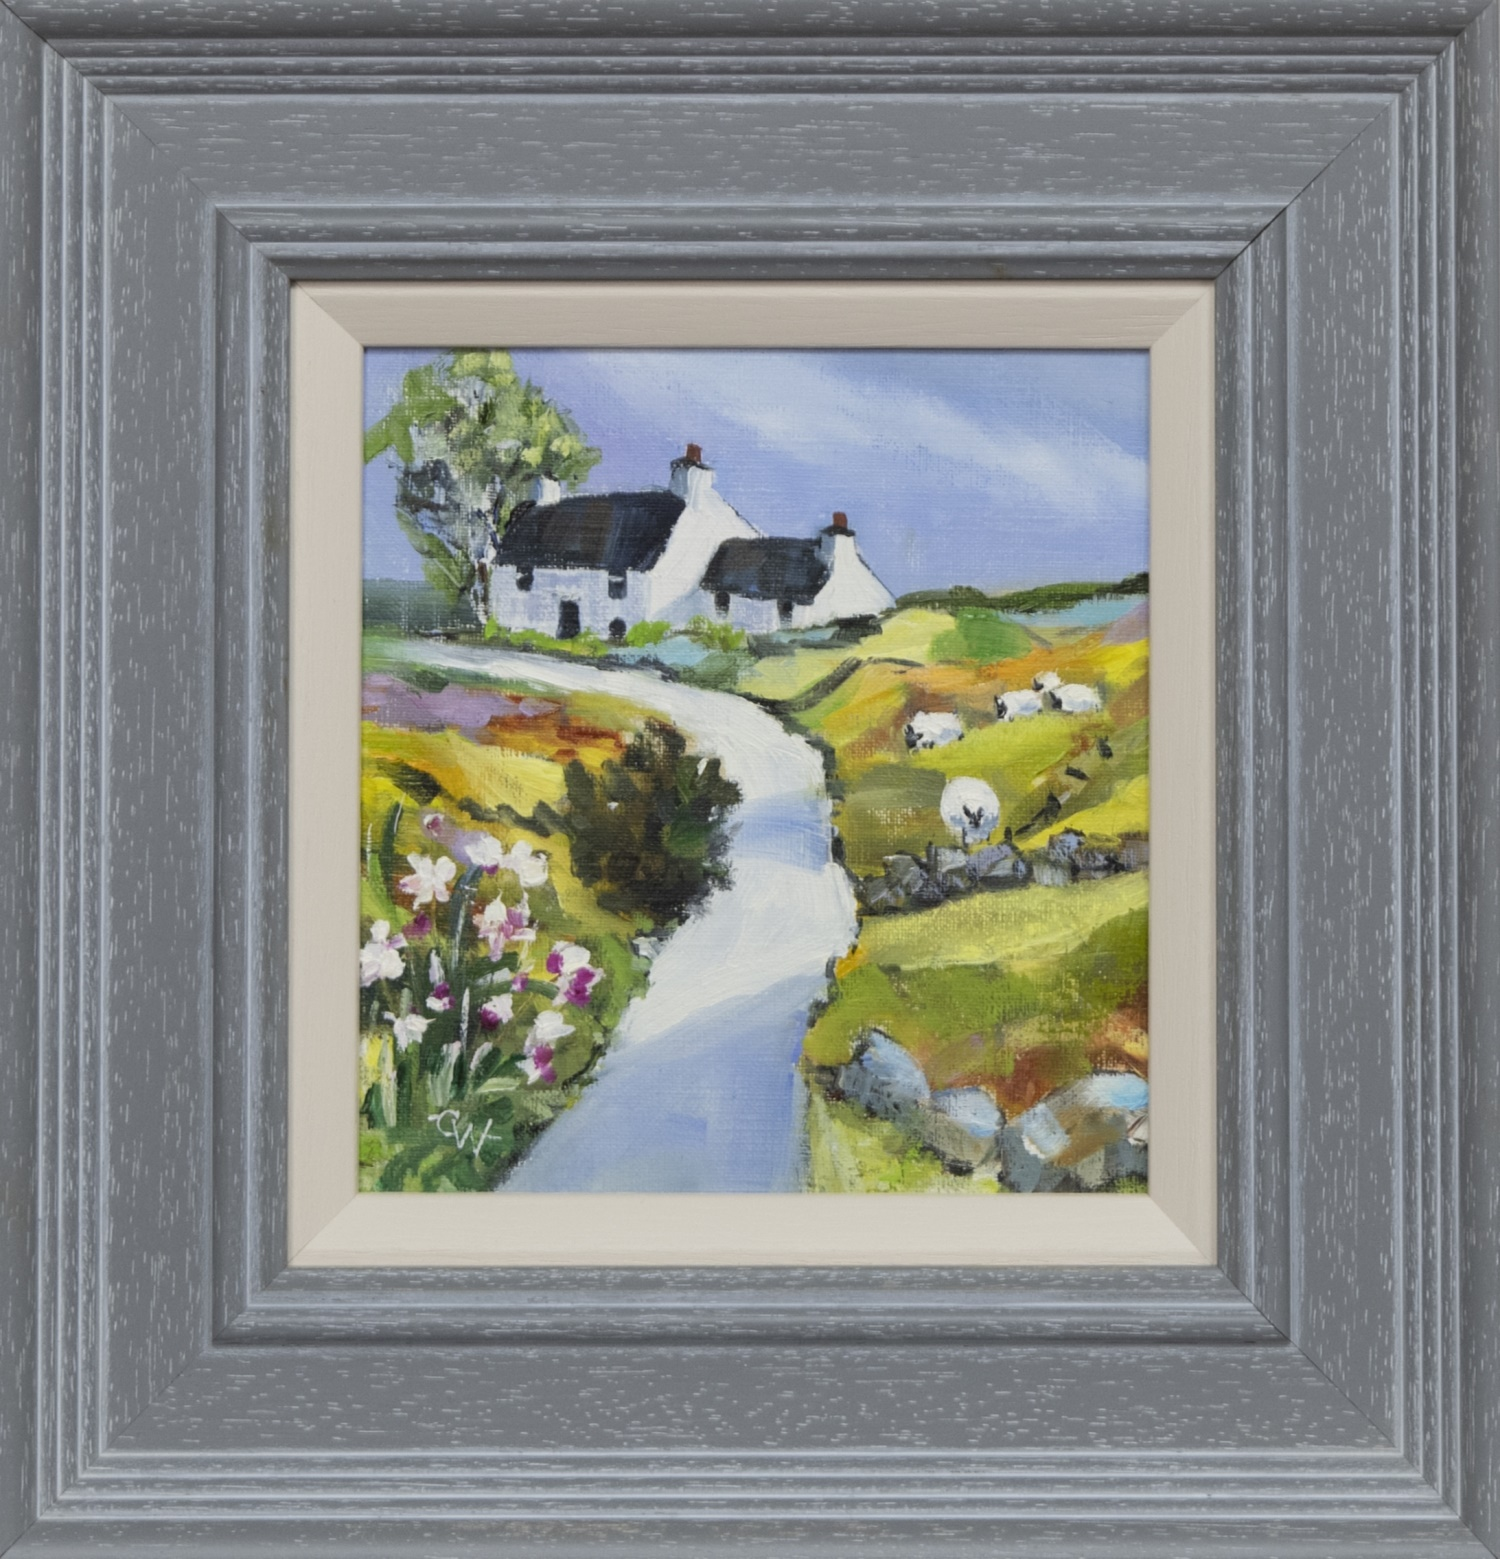 SHEEP COTTAGE, AN OIL BY CAROL WEST